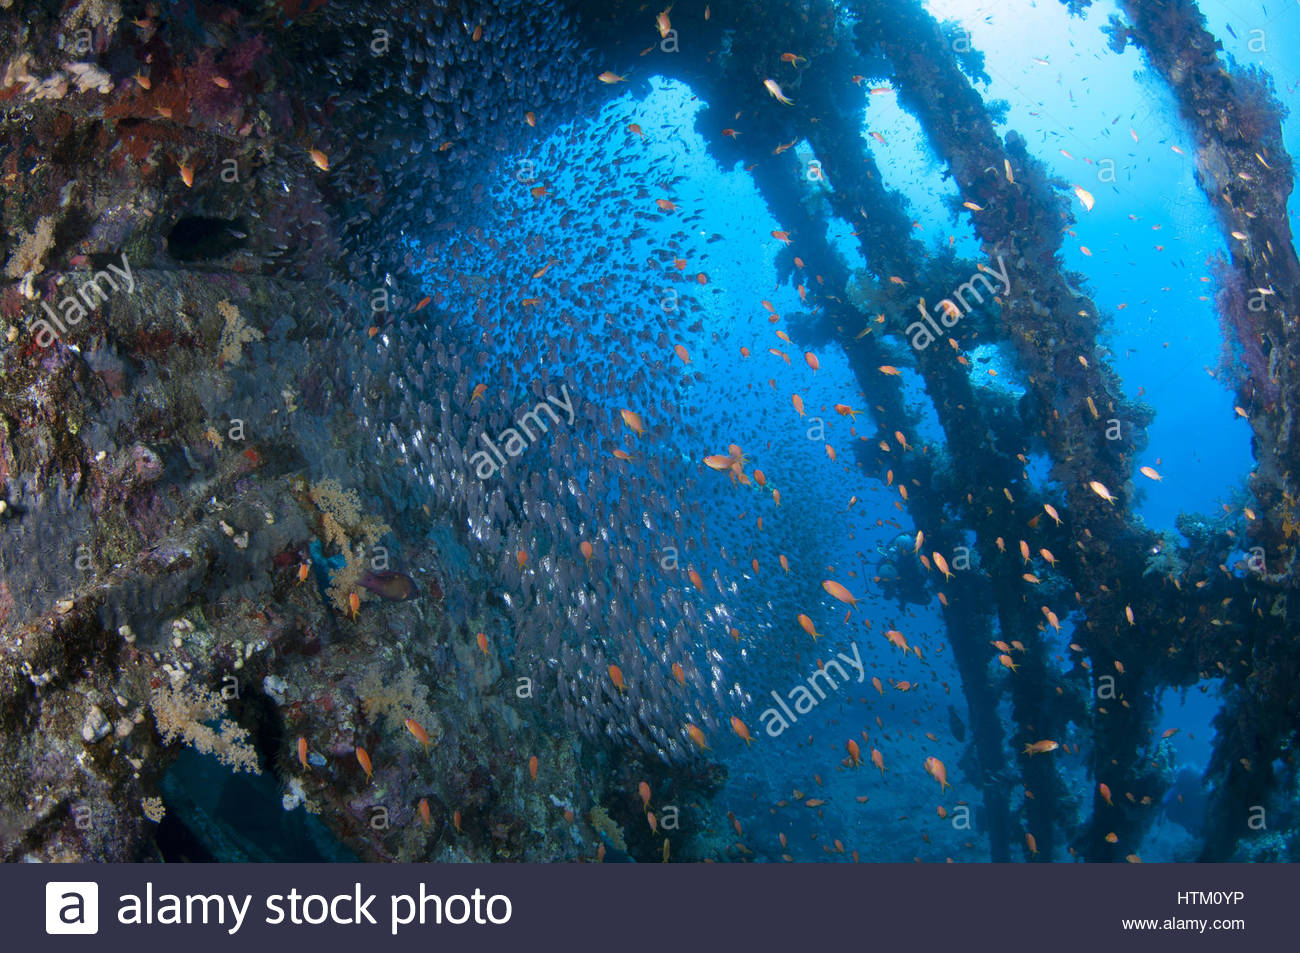 large school of fish Pigmy Sweepers Parapriacanthus ransonneti 1300x953